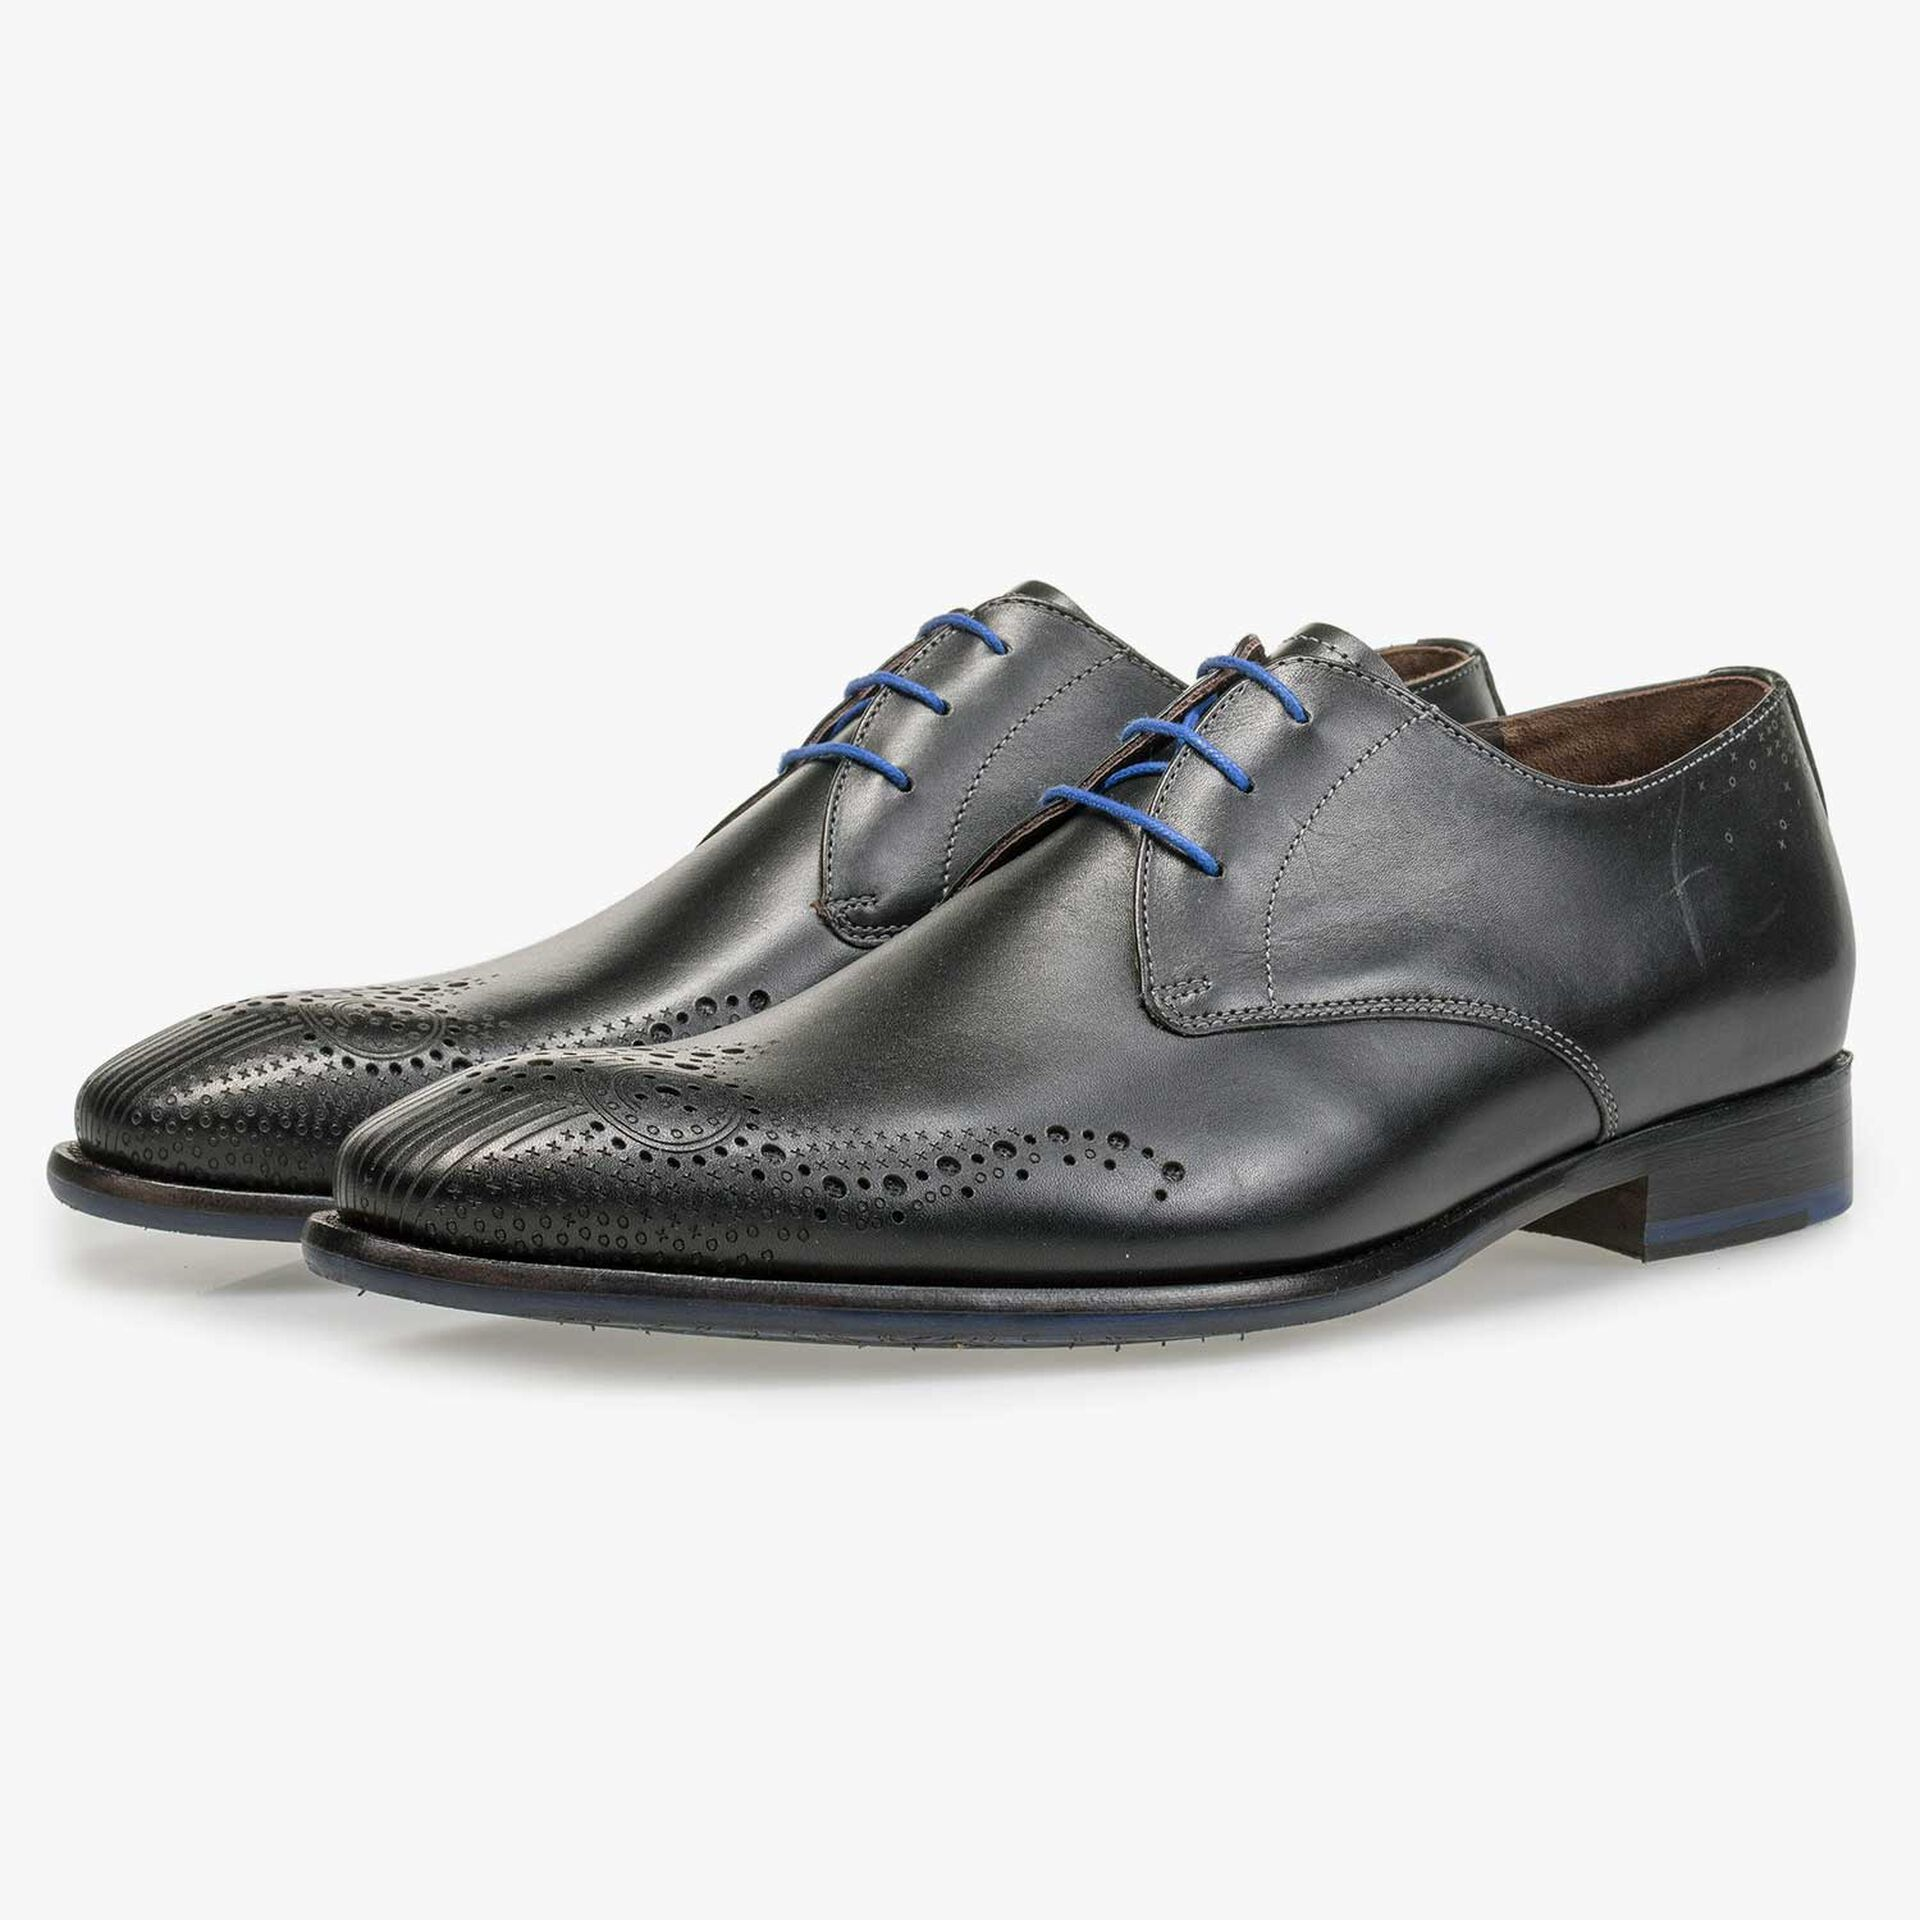 Black brogue lace shoe made of calf's leather